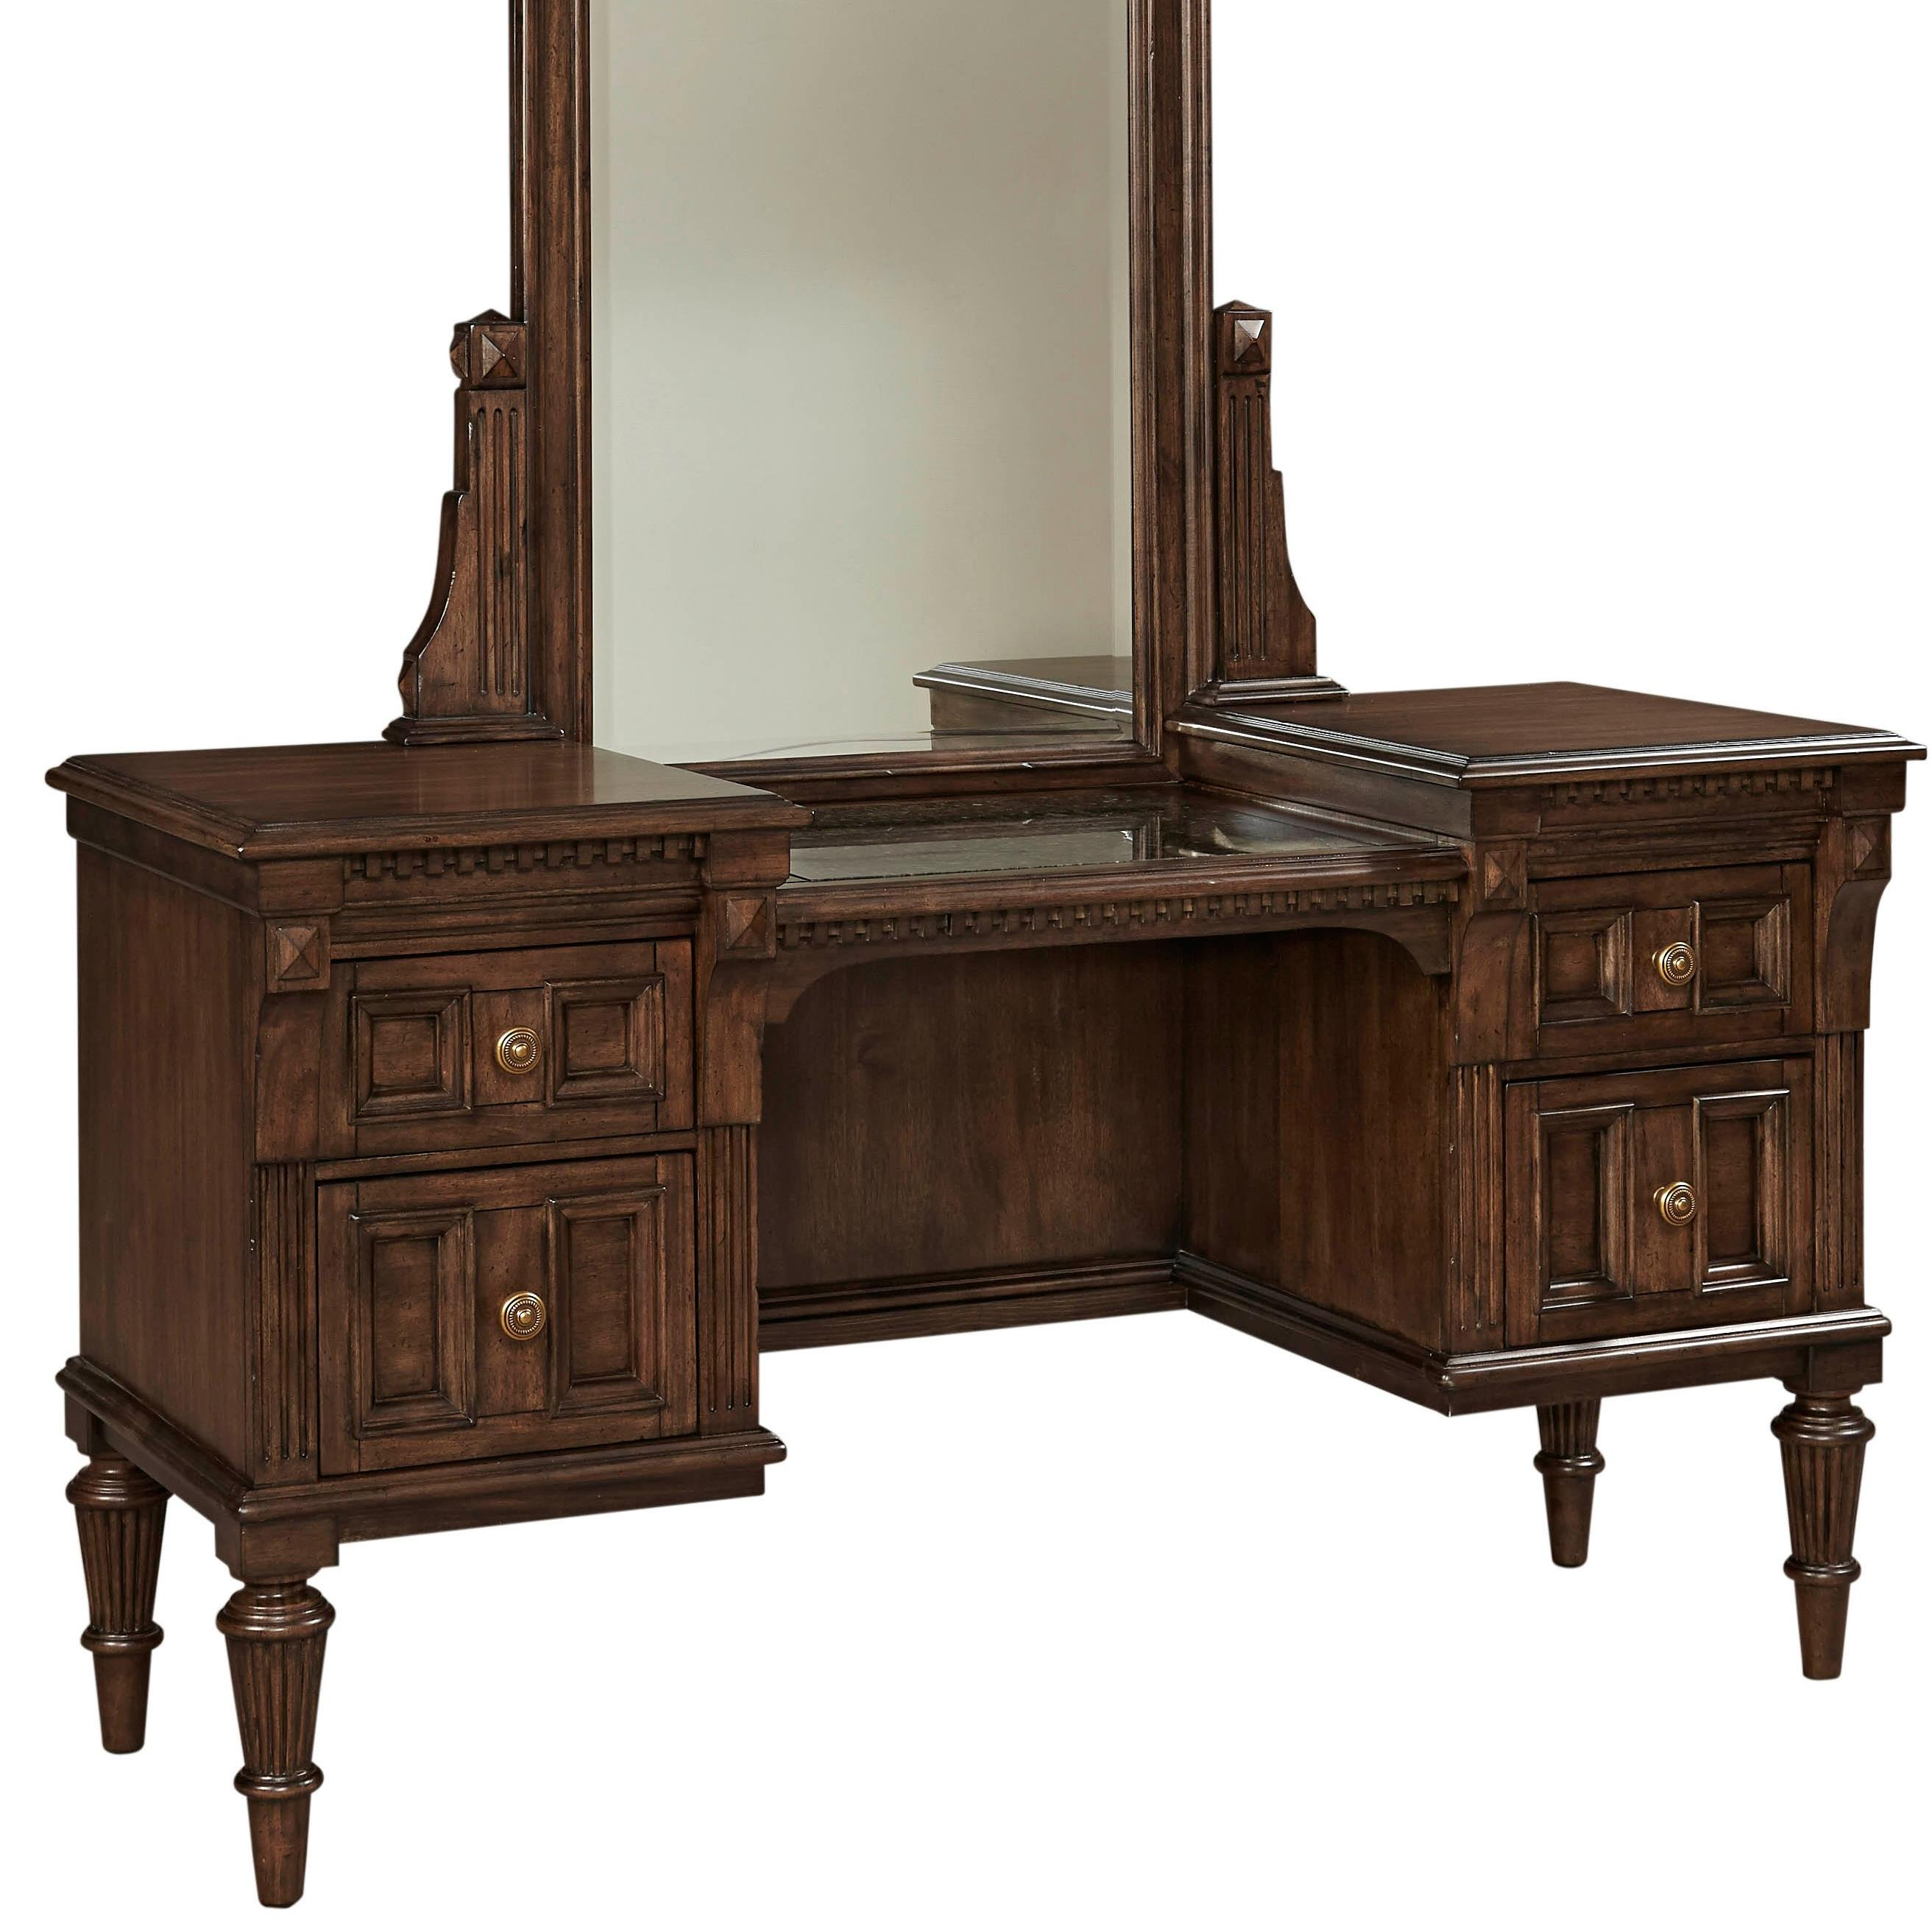 Broyhill Furniture Lyla Vanity - Item Number: 4912-220